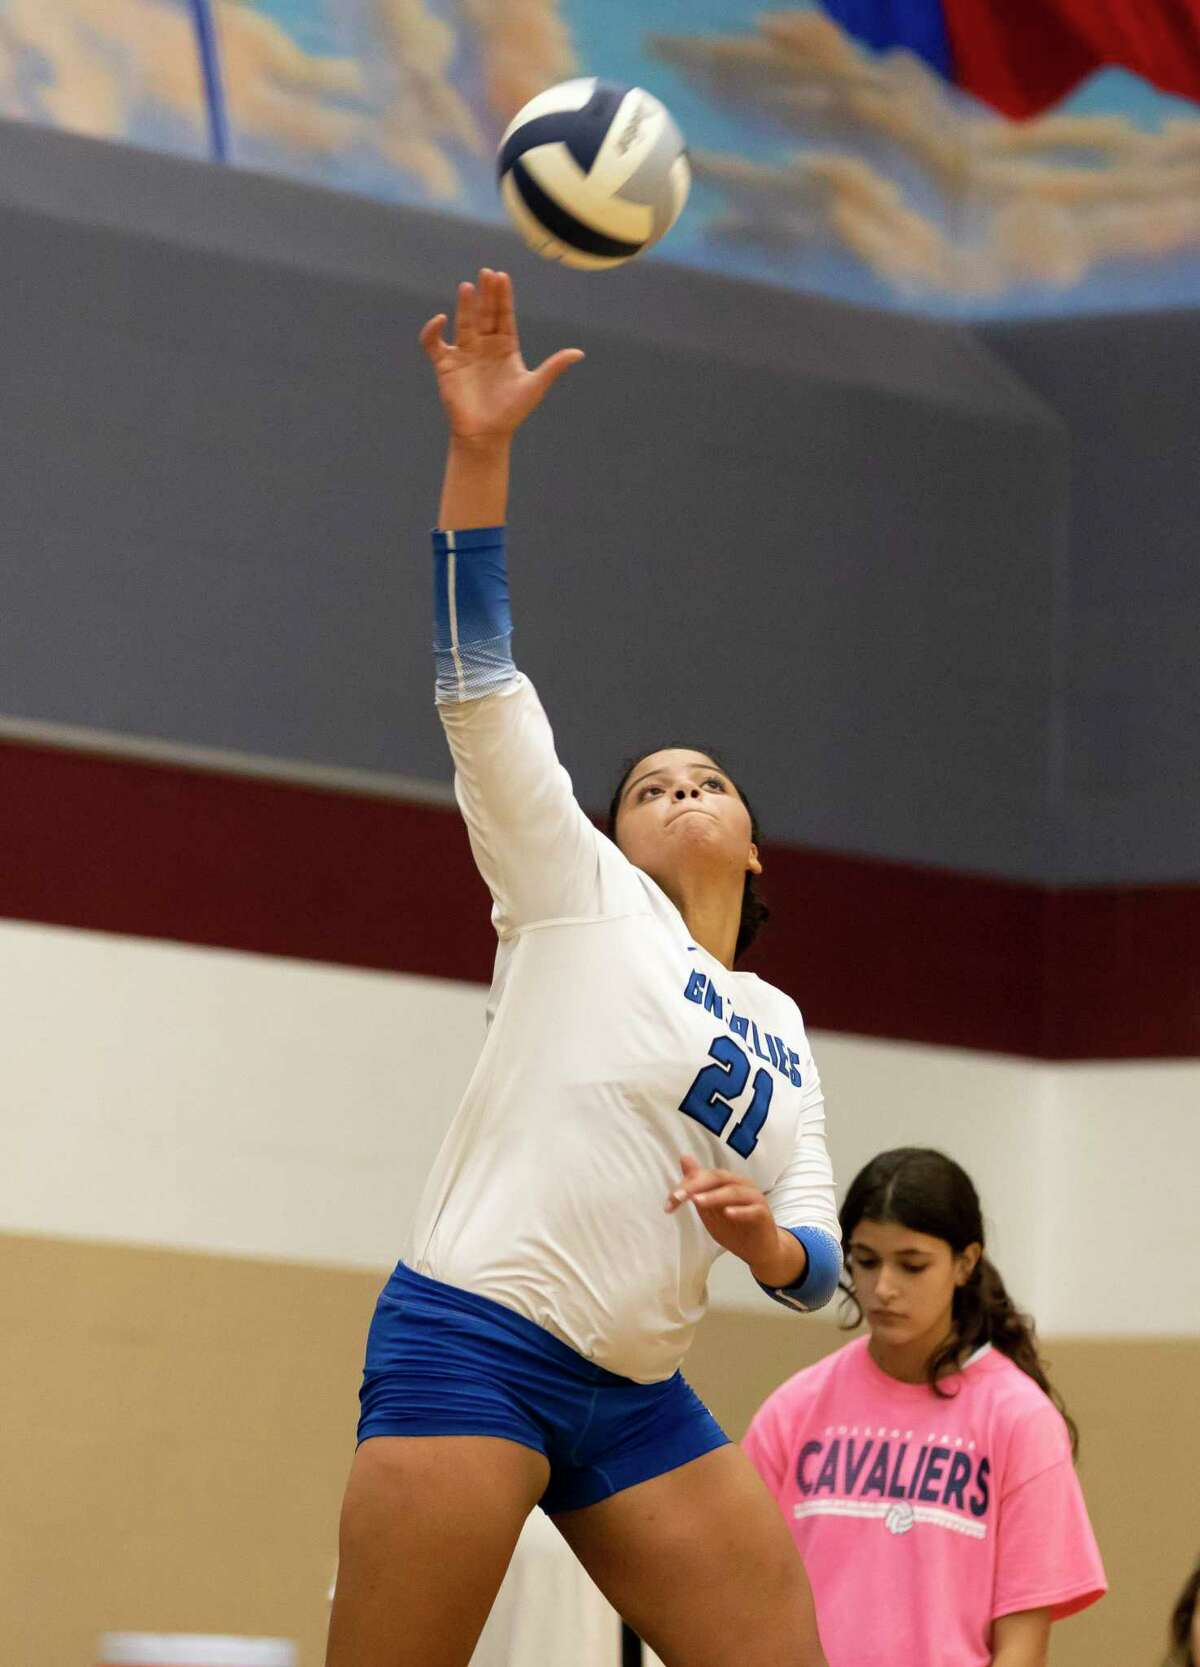 Grand Oaks outside hitter Fallon Thompson (21) serves the ball during the second set of a District 13-6A volleyball match against College Park at College Park High School, Tuesday, Sept. 21, 2021, in The Woodlands.